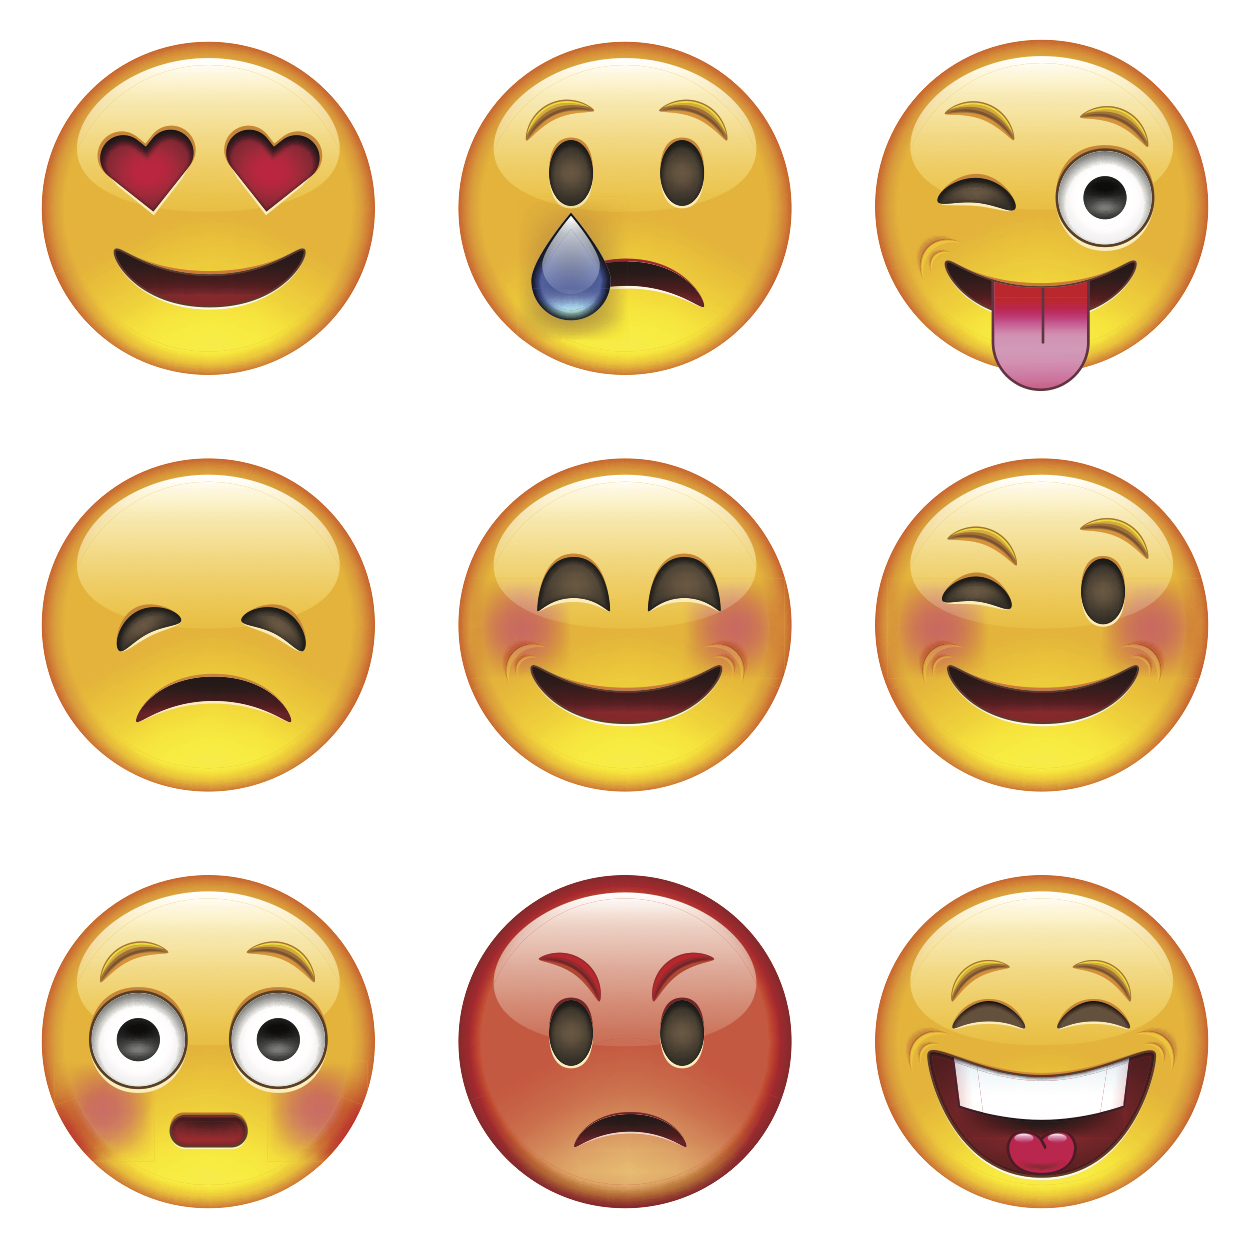 Emojis may seem like a frivolous development, but a new study has found that they can help convey tone and meaning in written communication.